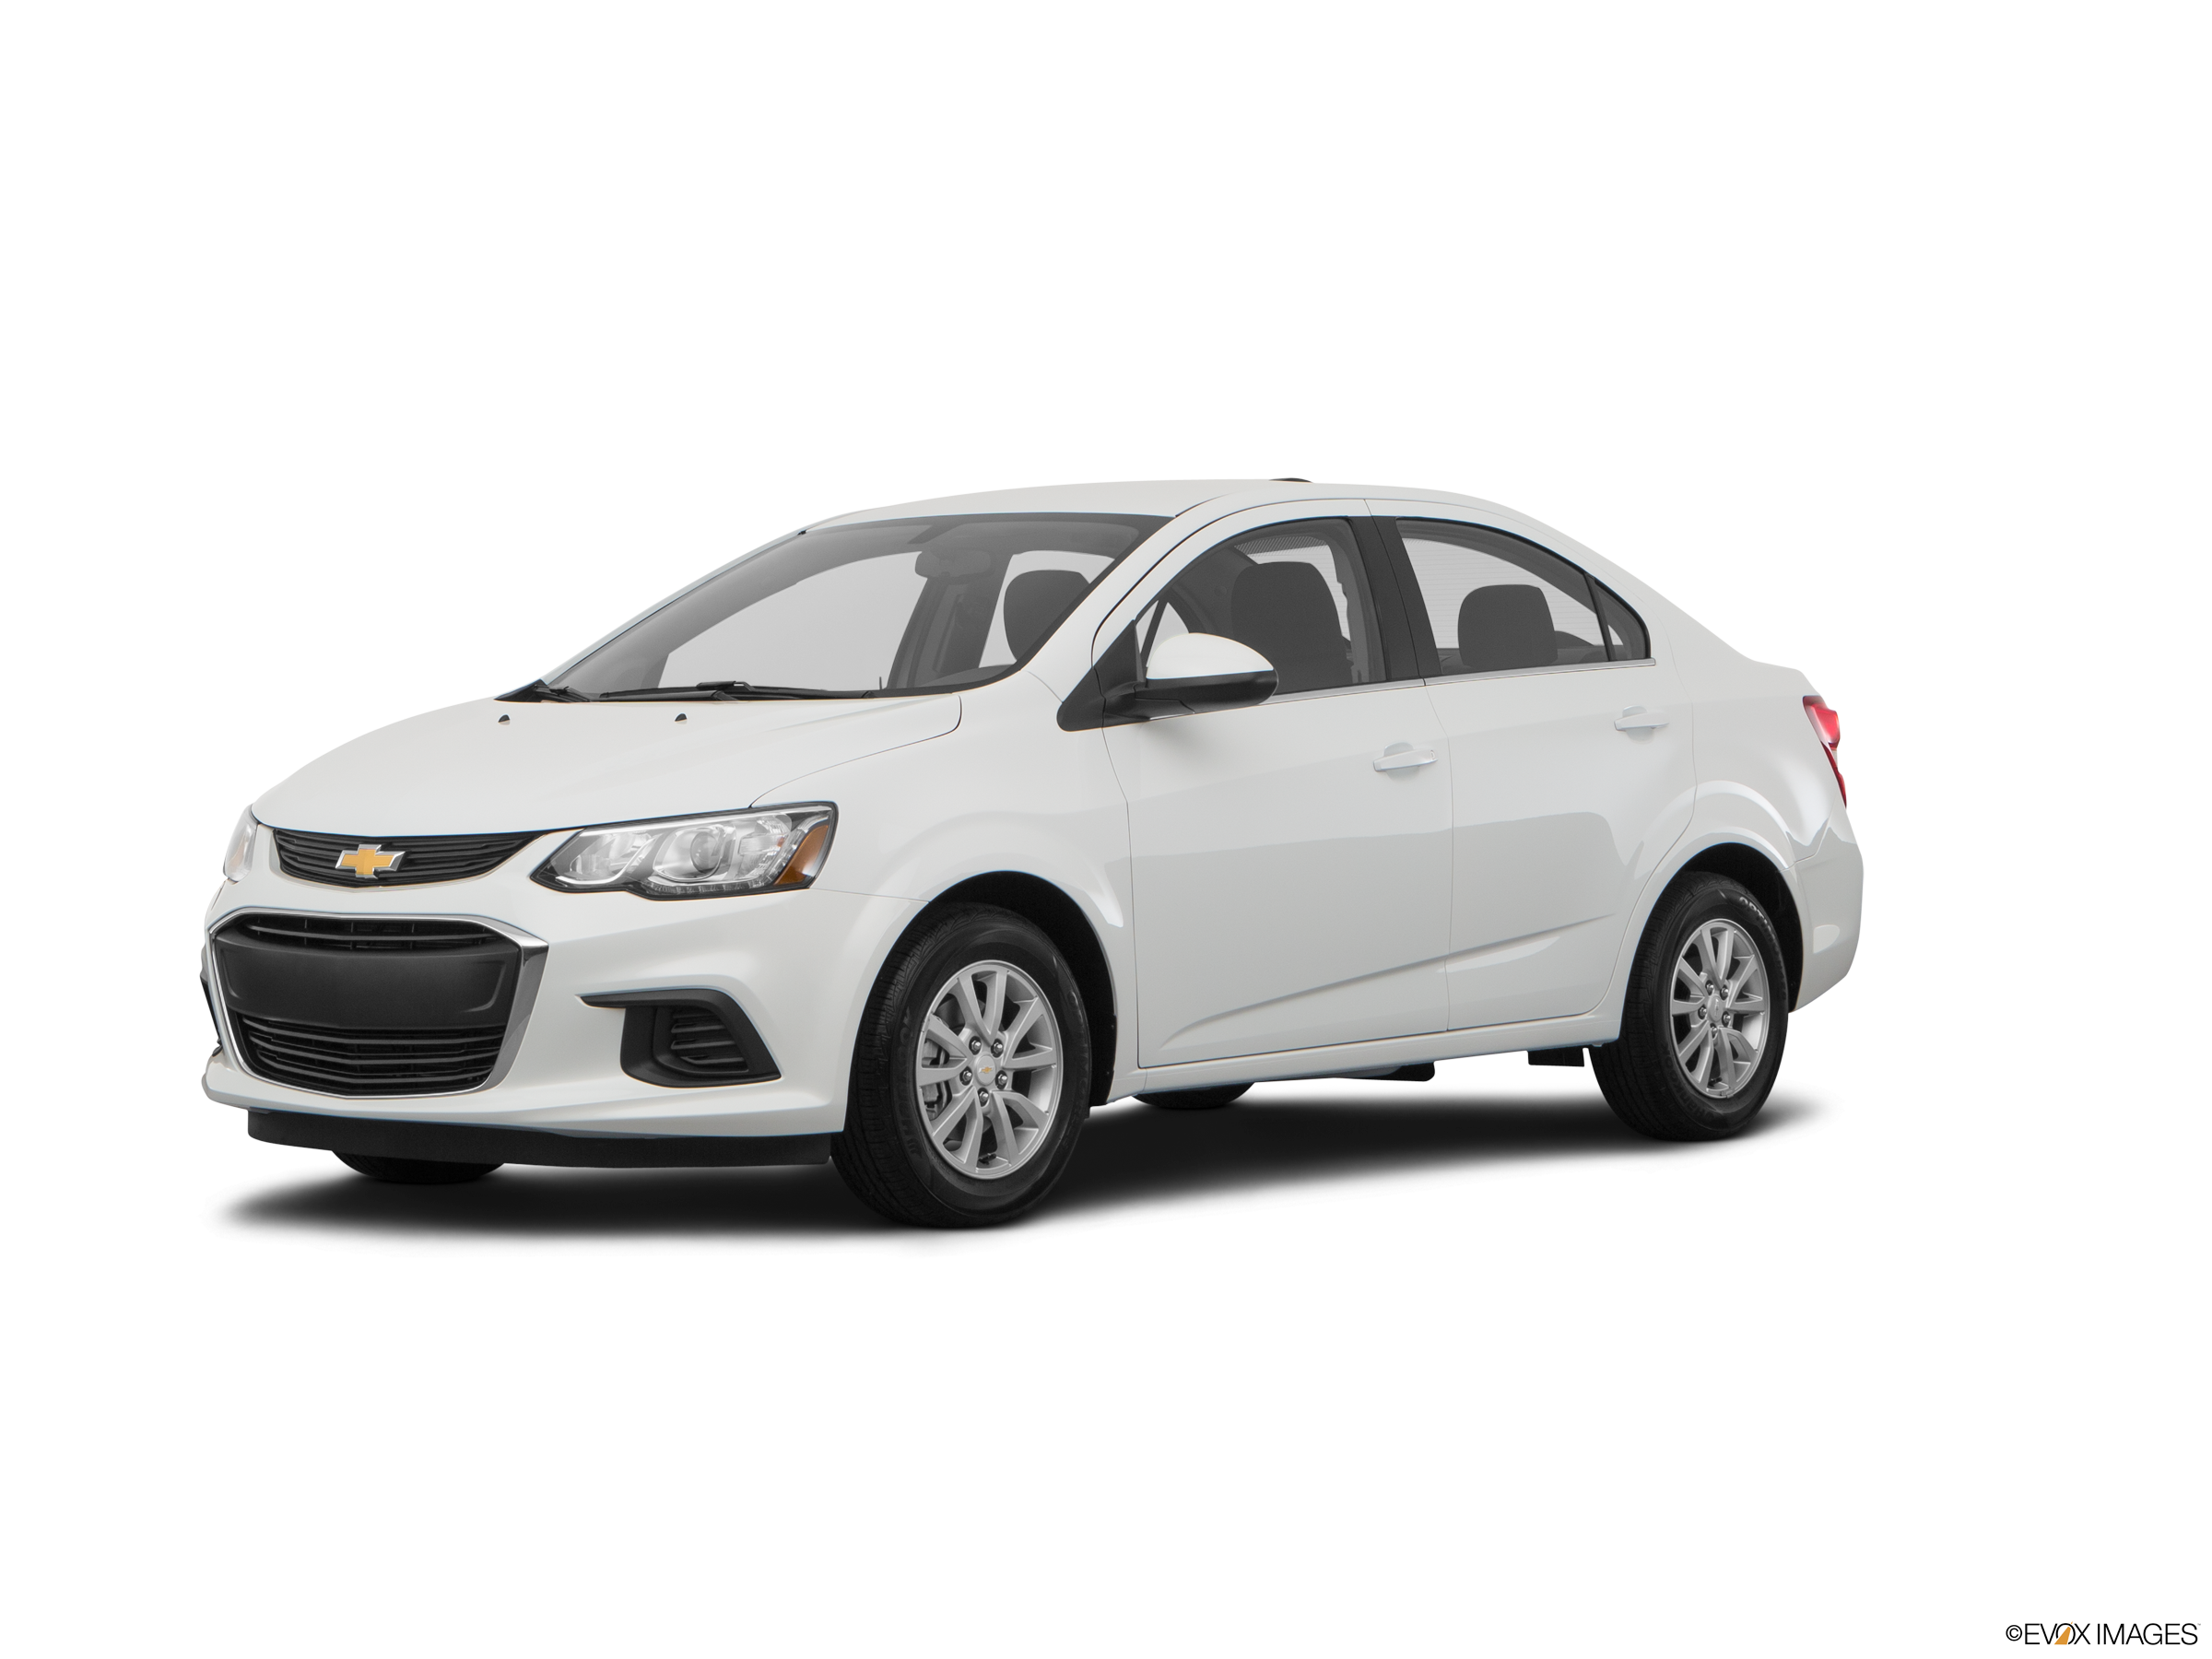 10 Coolest New Cars Under $18,000 - 2017 Chevrolet Sonic